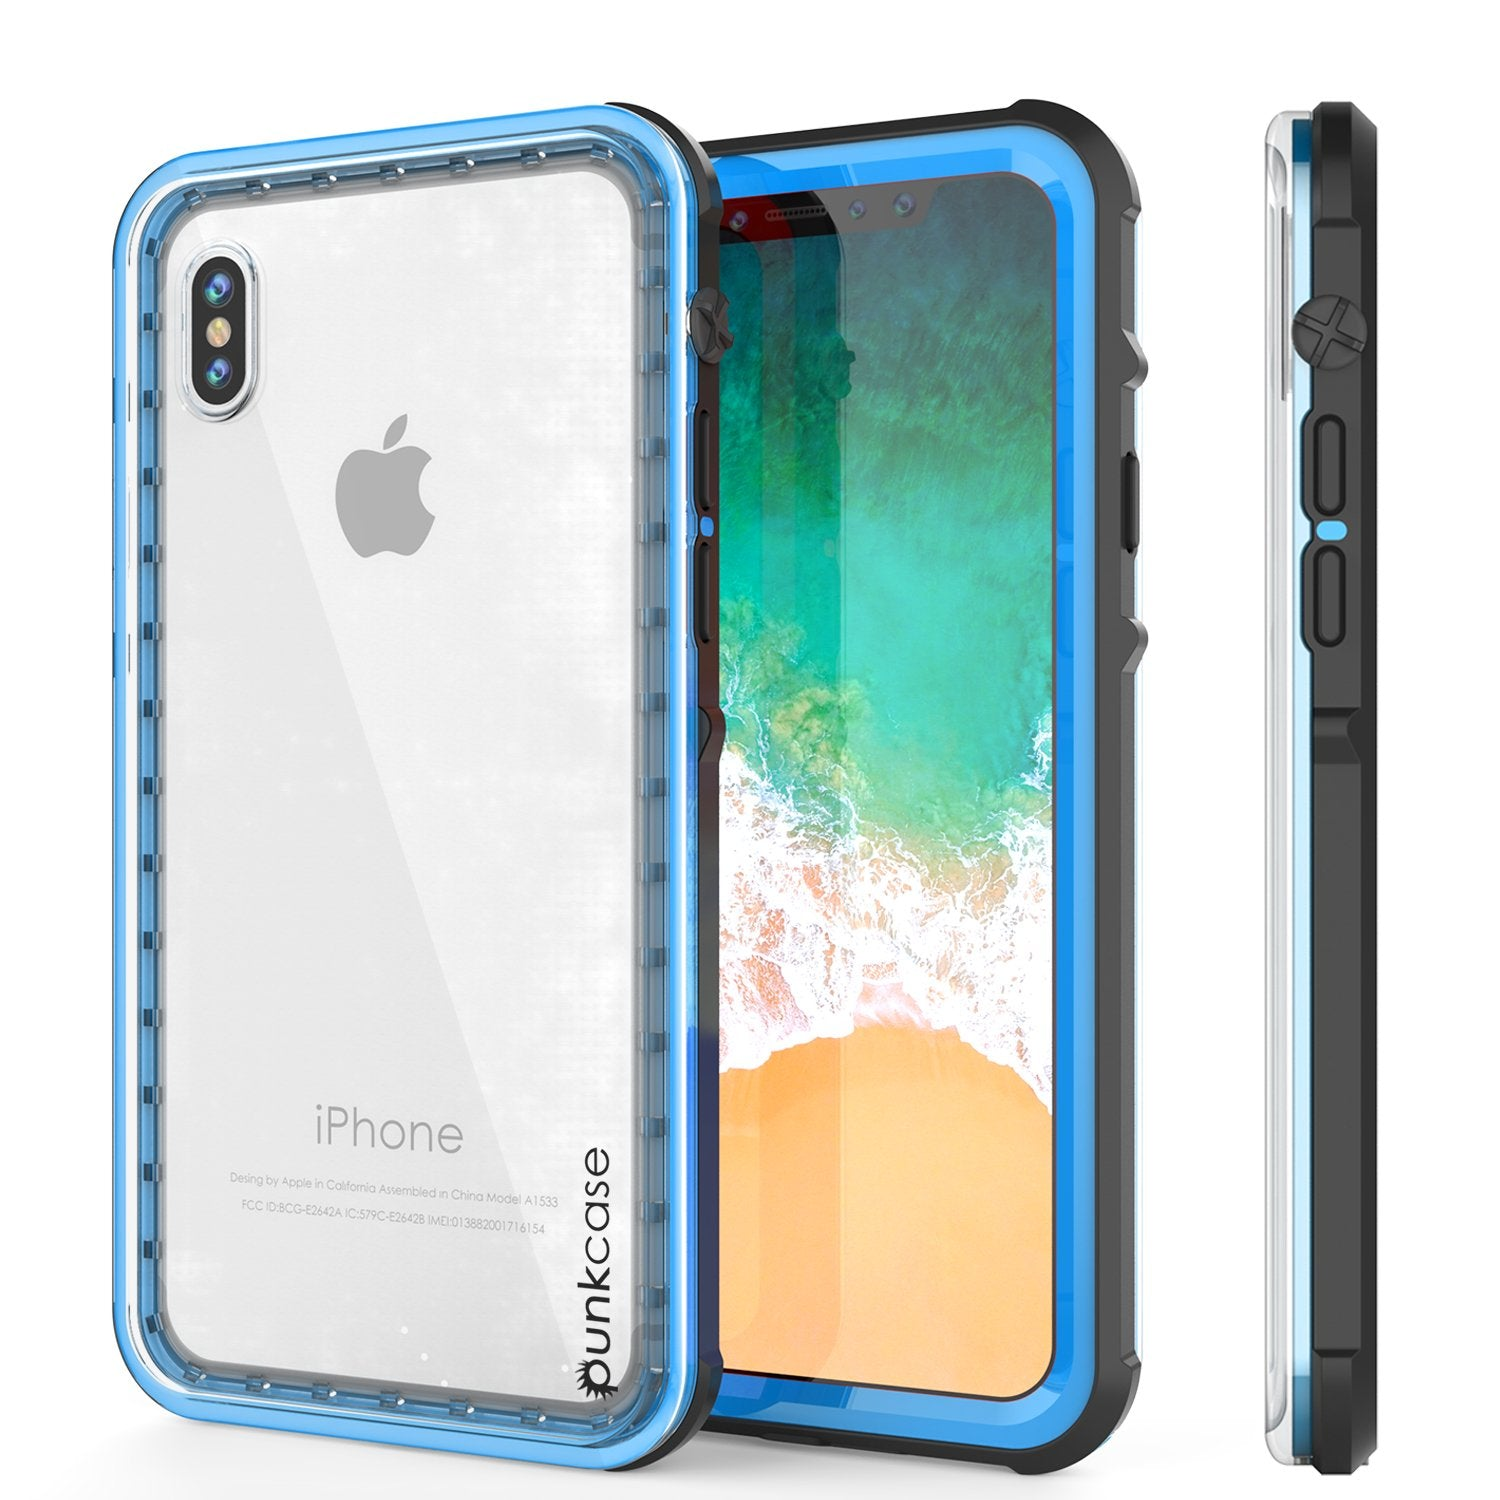 iPhone X Case, PUNKCase [CRYSTAL SERIES] Protective IP68 Certified Cover W/ Attached Screen Protector - DustPROOF, ShockPROOF, SnowPROOF - Ultra Slim Fit for Apple iPhone 10 [LIGHT BLUE]